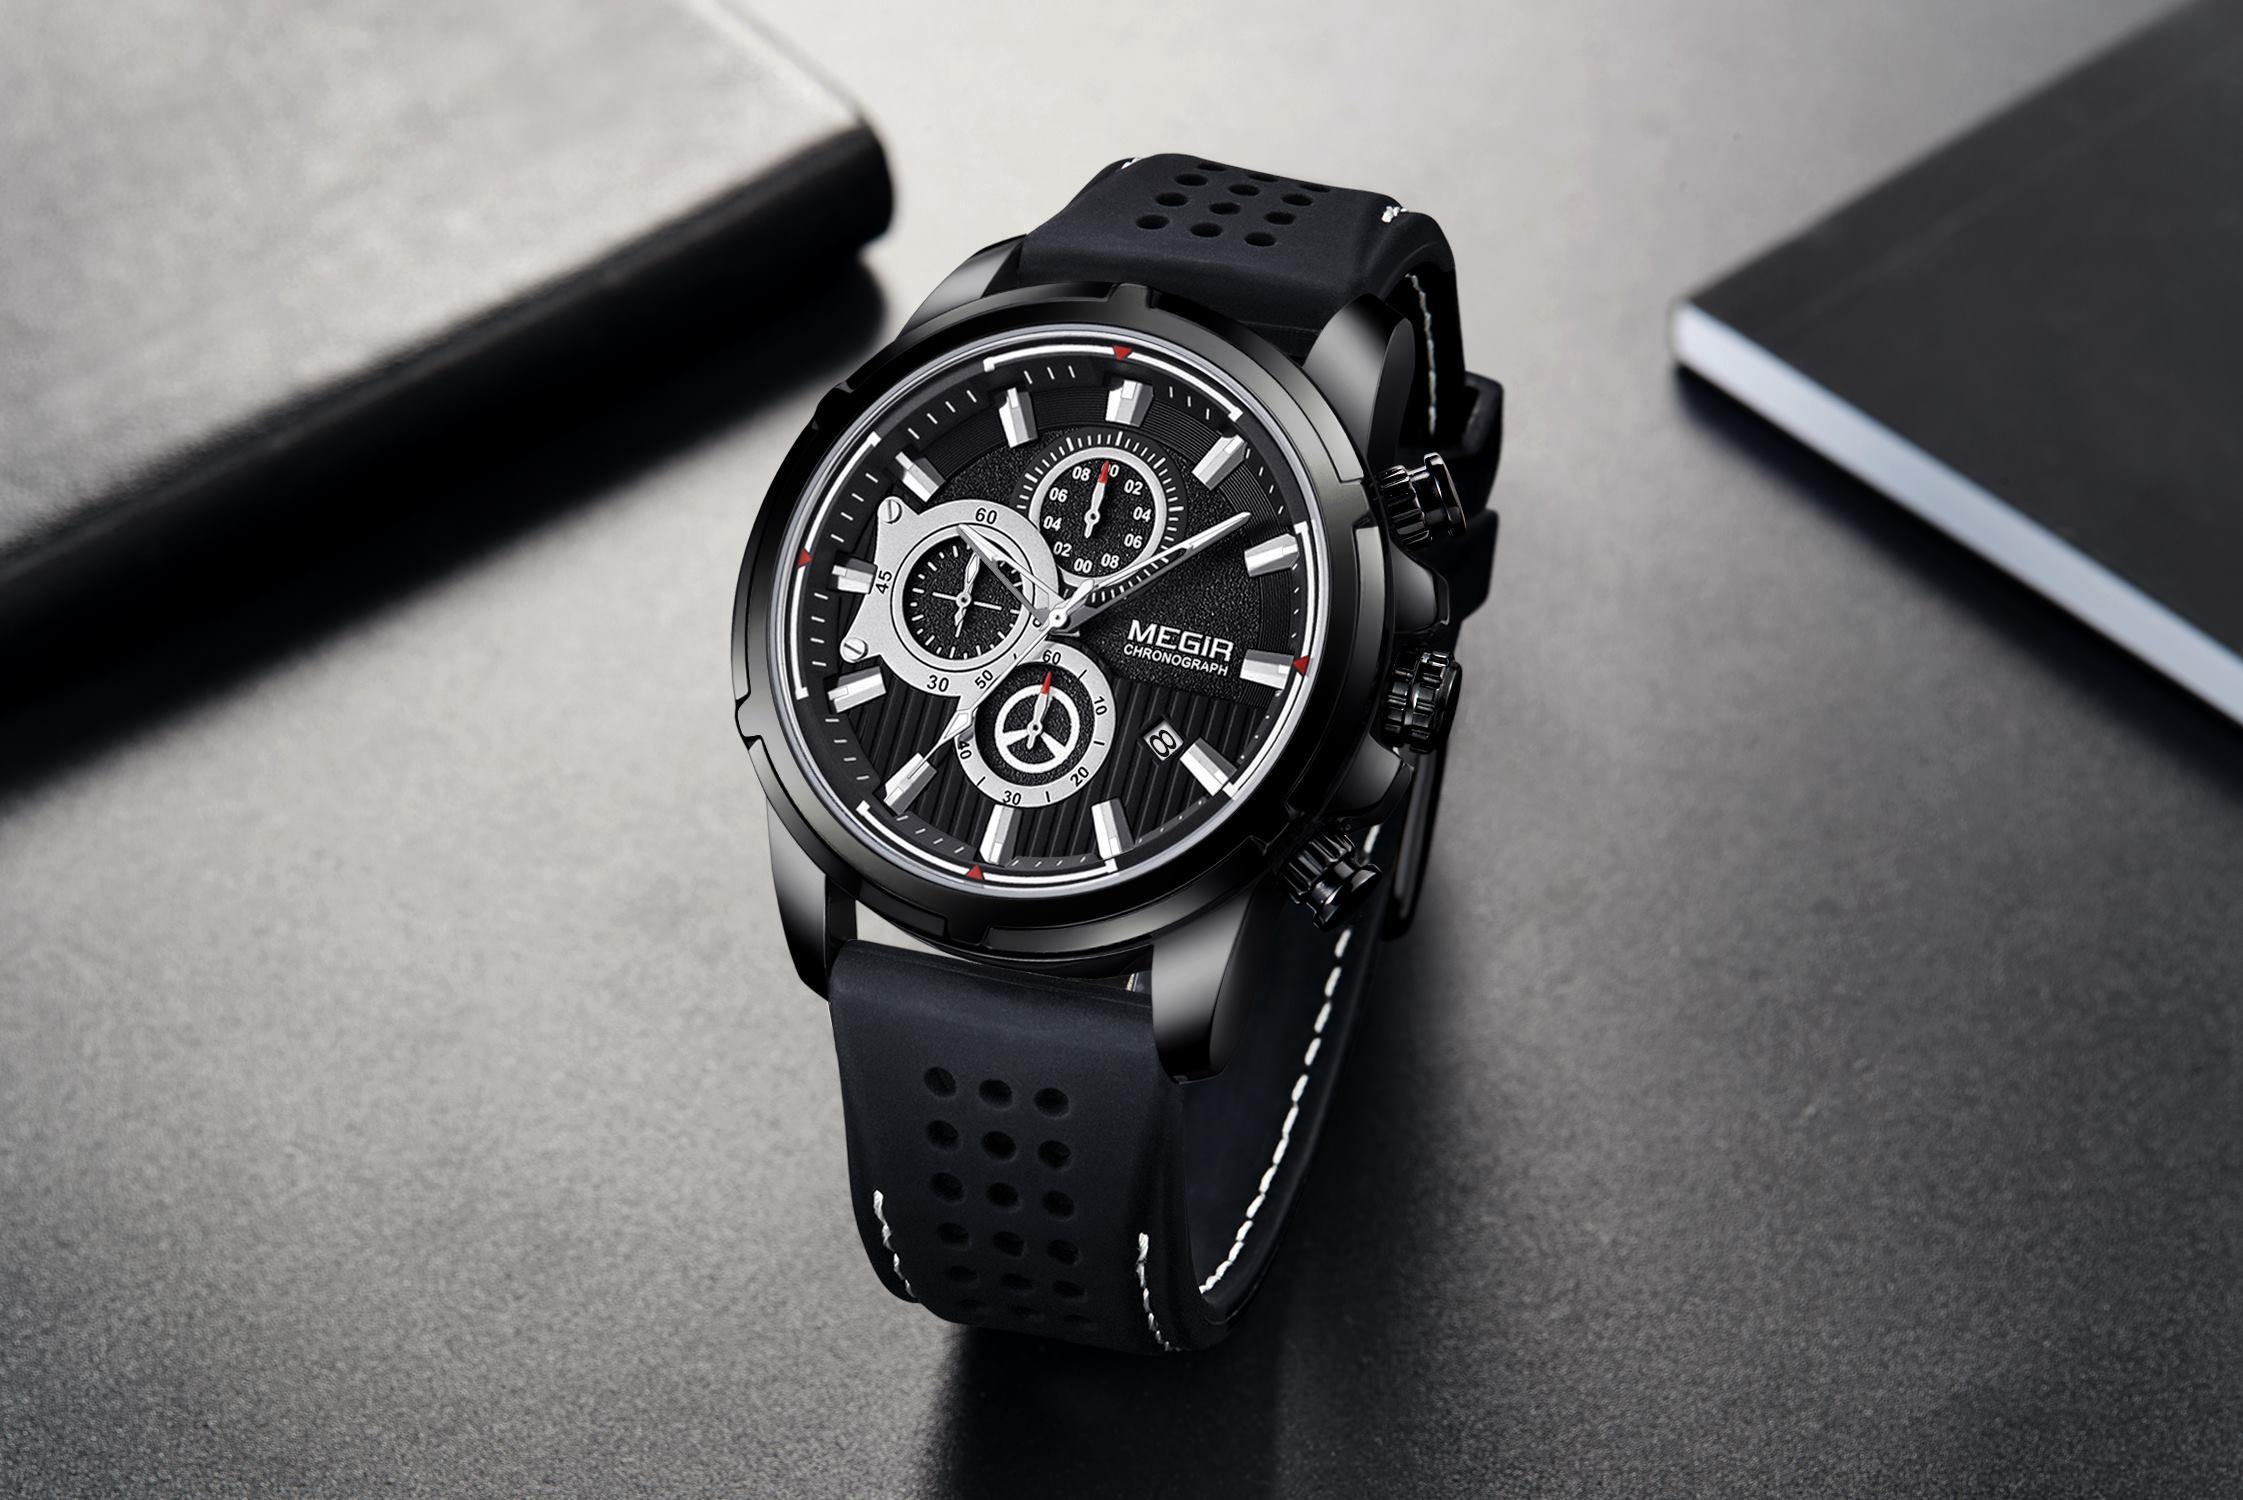 MEGIR Military Quartz Watches, Top Brand Luxury Sports 2101【🎅Christmas 30% OFF】 - MEGIR